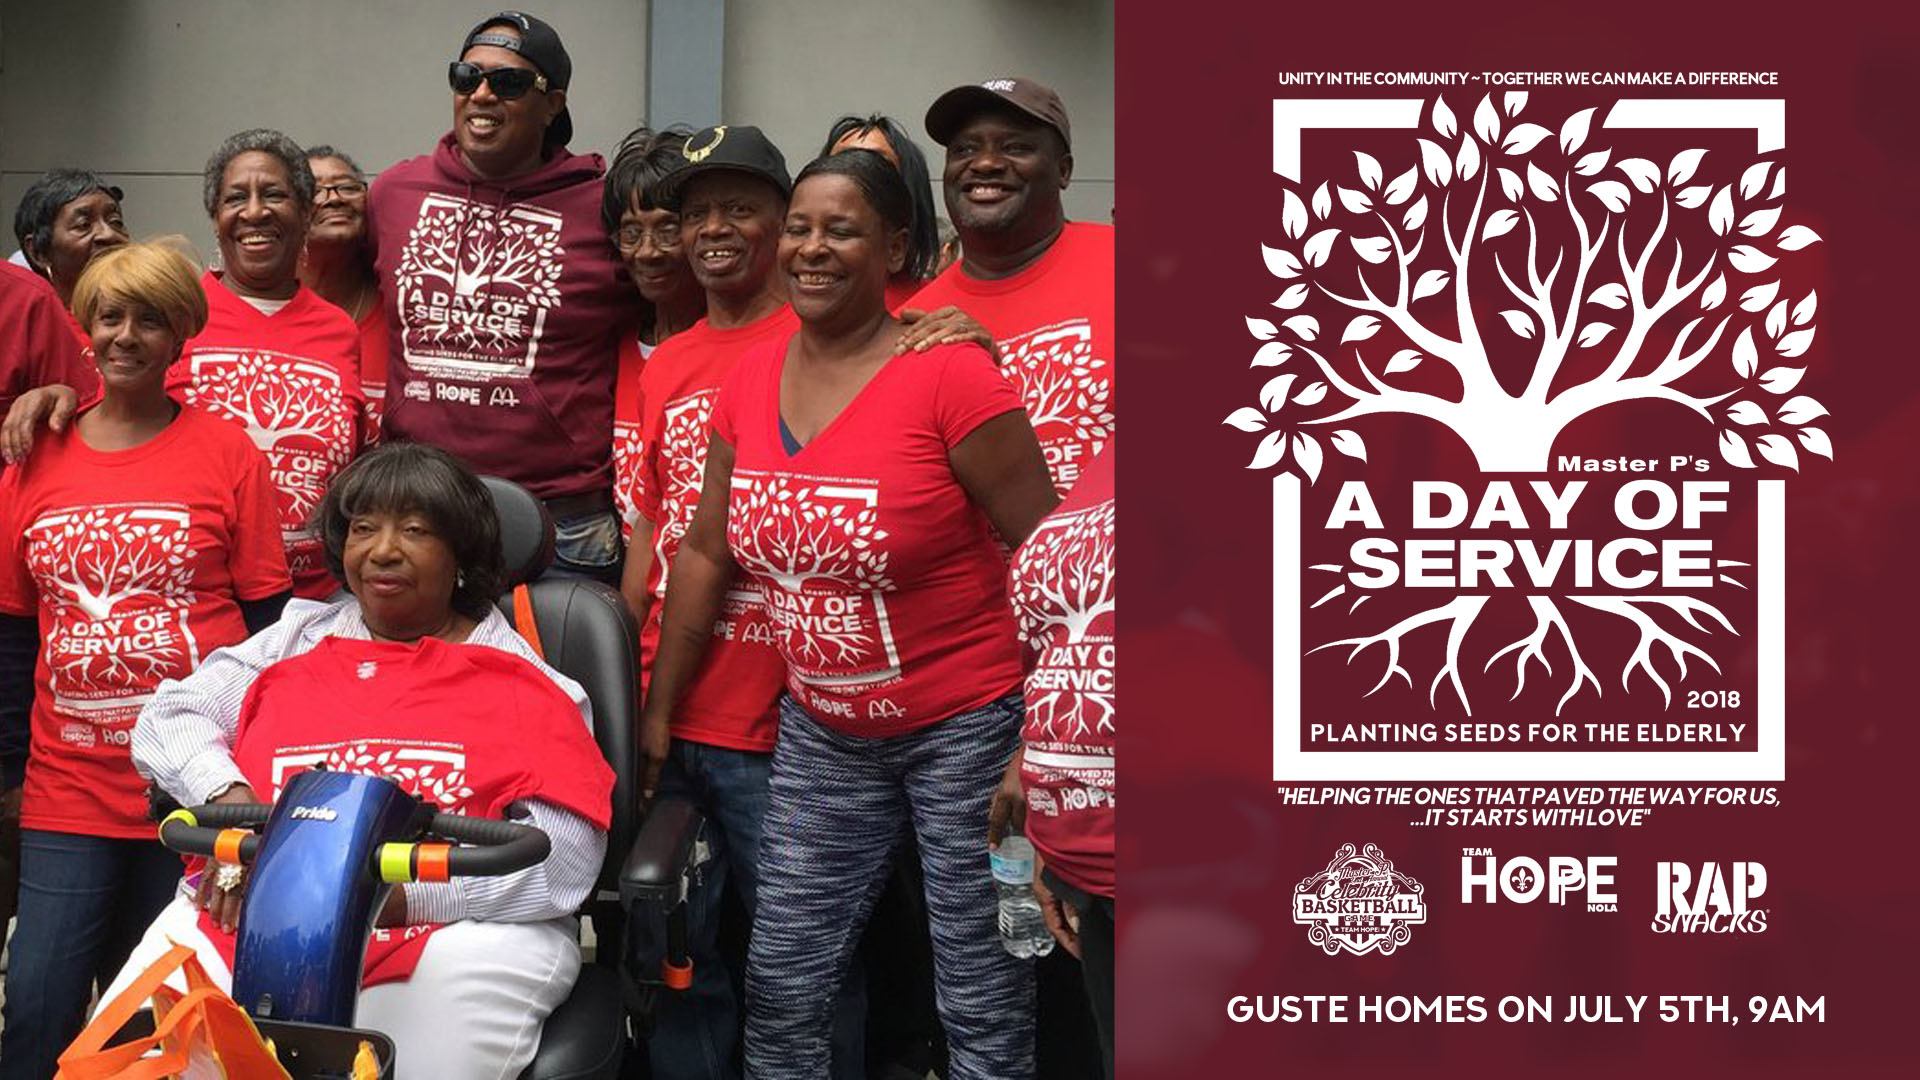 MASTER P IGROW CAMPAIGN PLANTING SEEDS IN NEW ORLEANS GIVING BACK TO THE ELDERLY